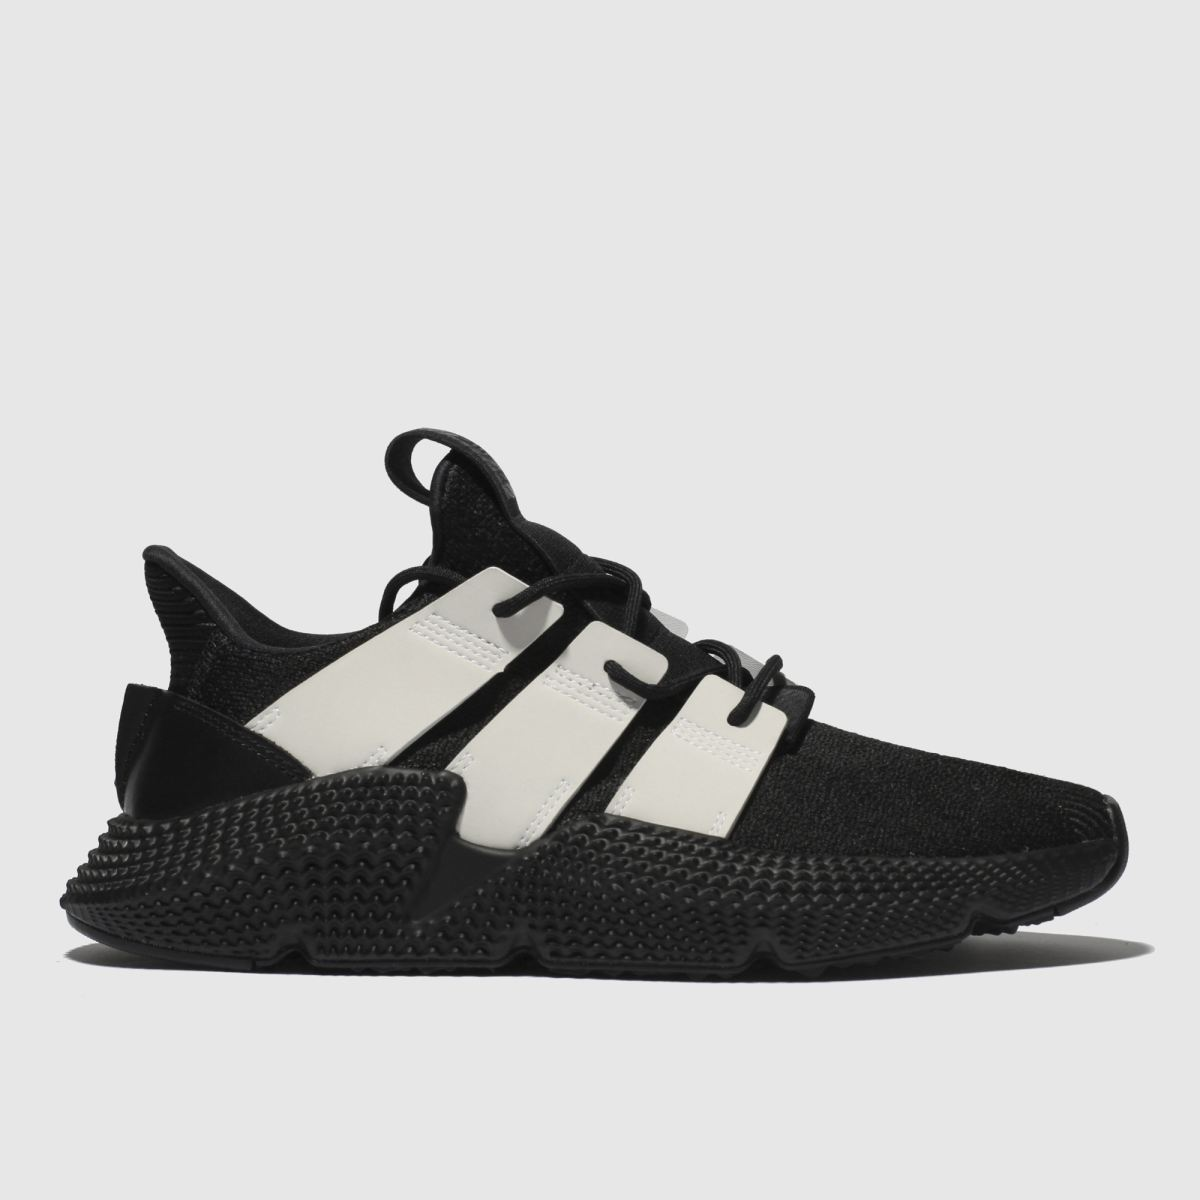 Adidas Black & White Prophere Trainers